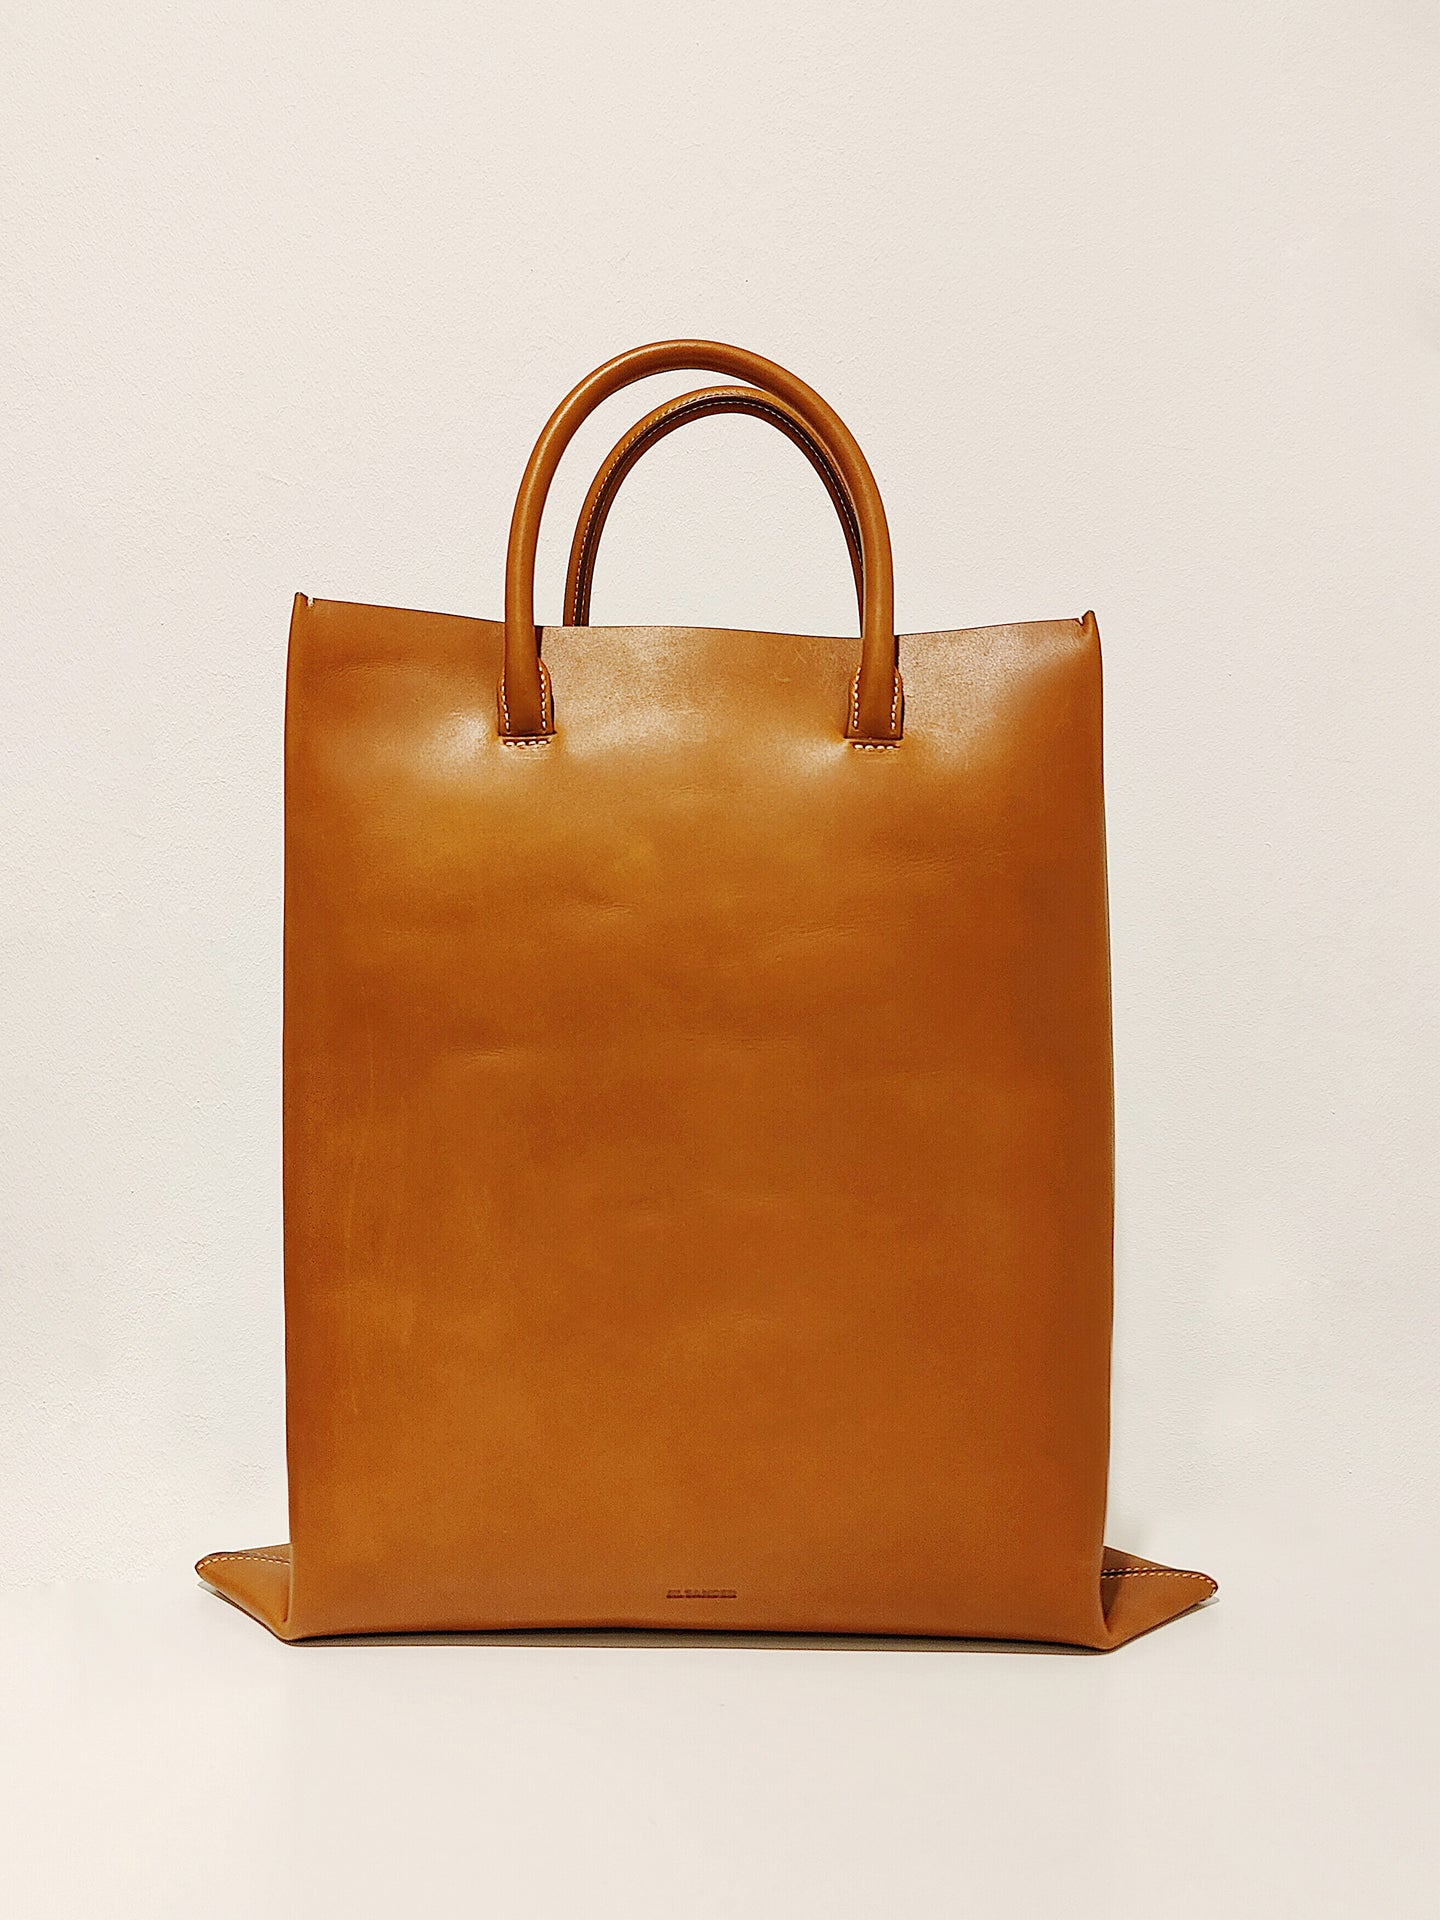 Standing Tote SM rust